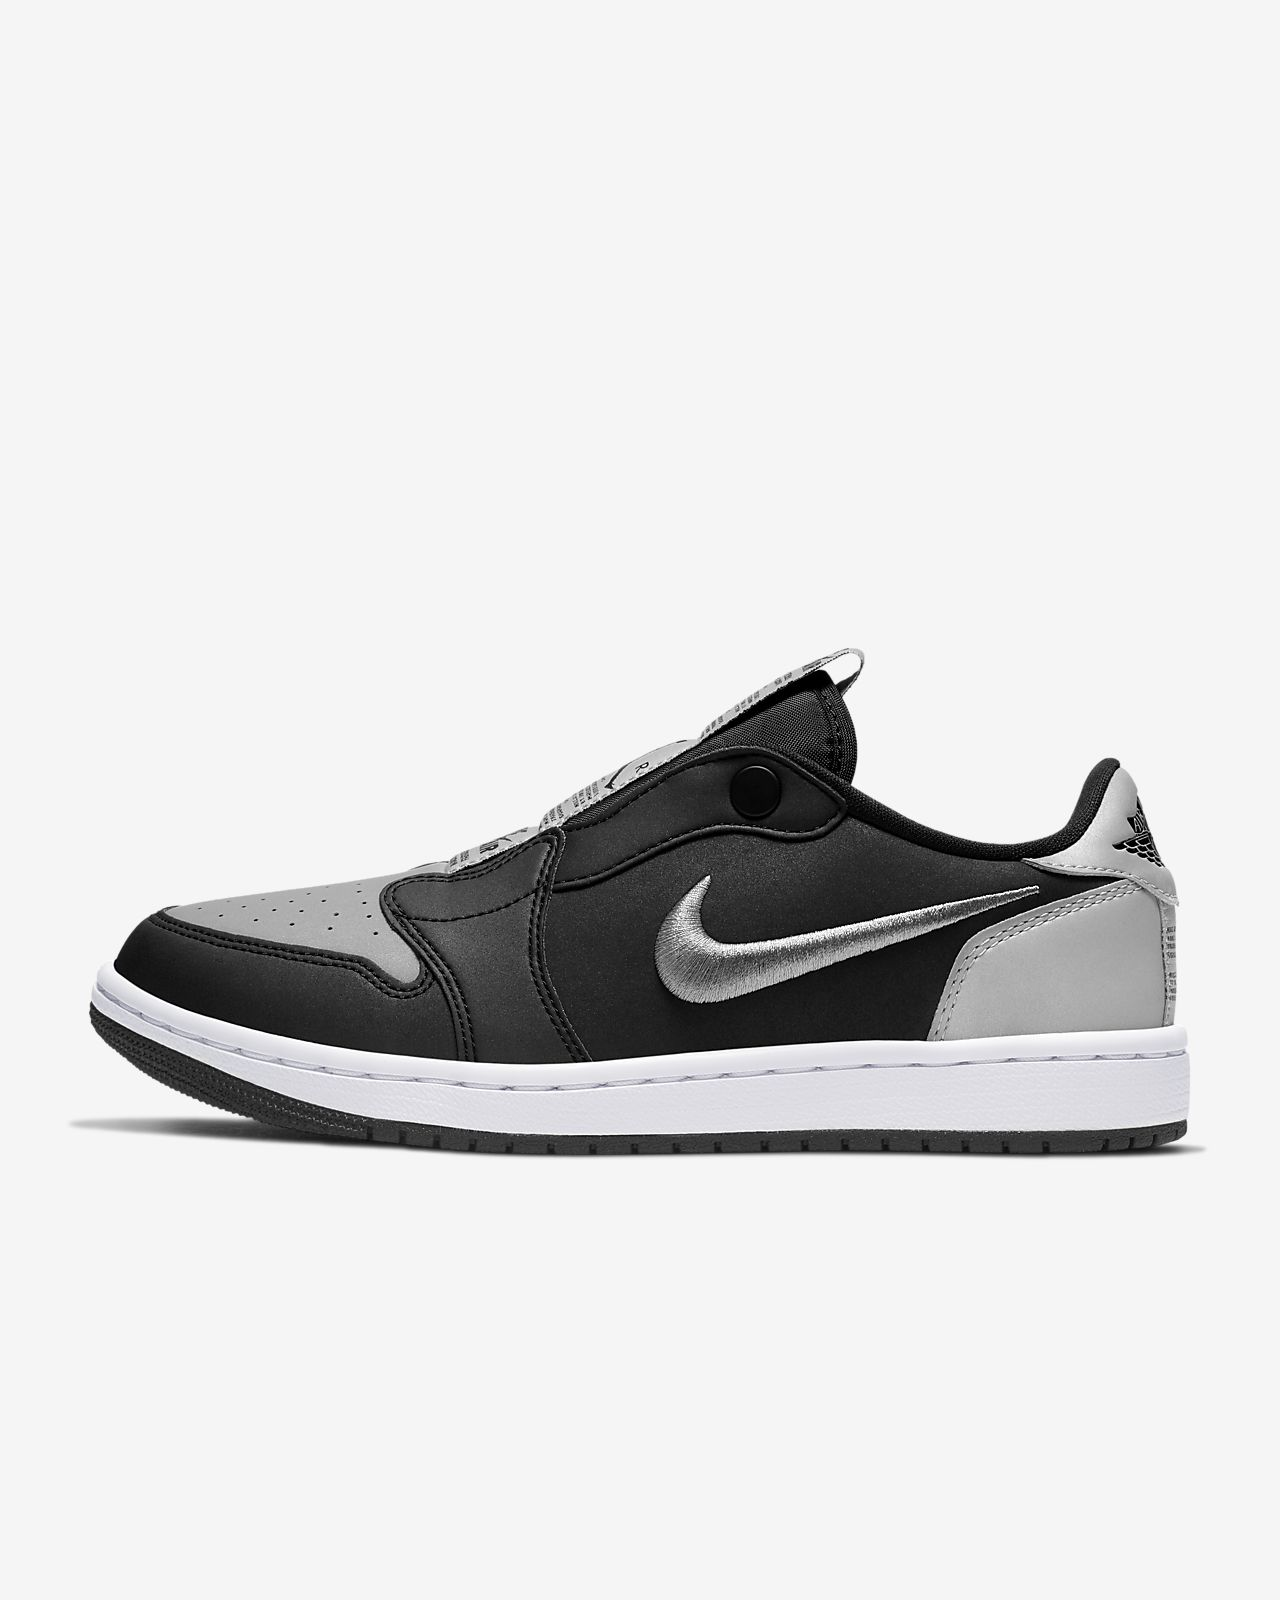 Air Jordan 1 Retro Low SE Women's Slip-On Shoe